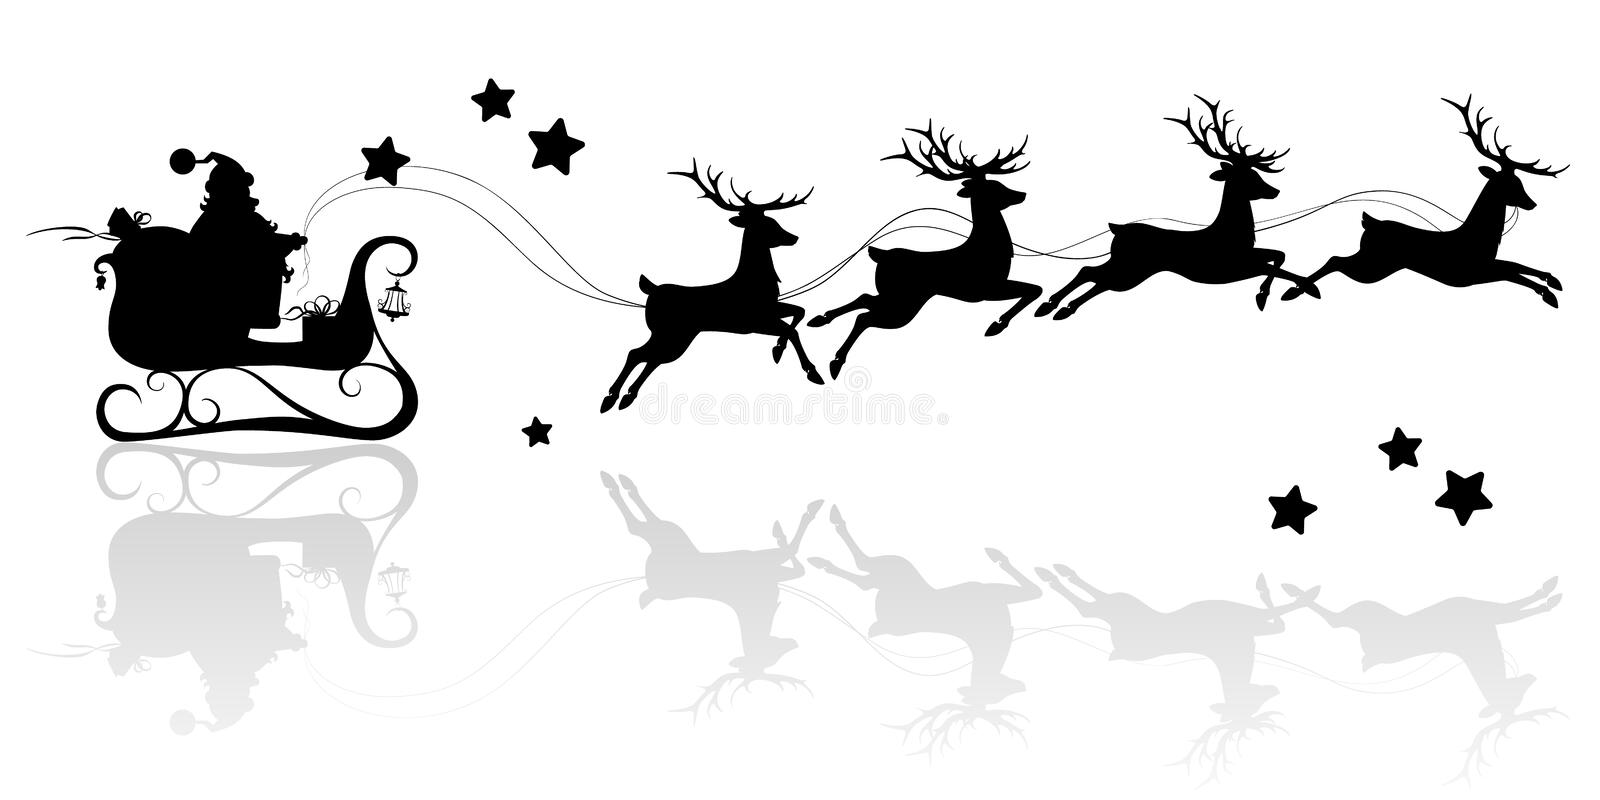 Santa Claus silhouette riding a sleigh with deers. Vector image on isolated white background royalty free illustration